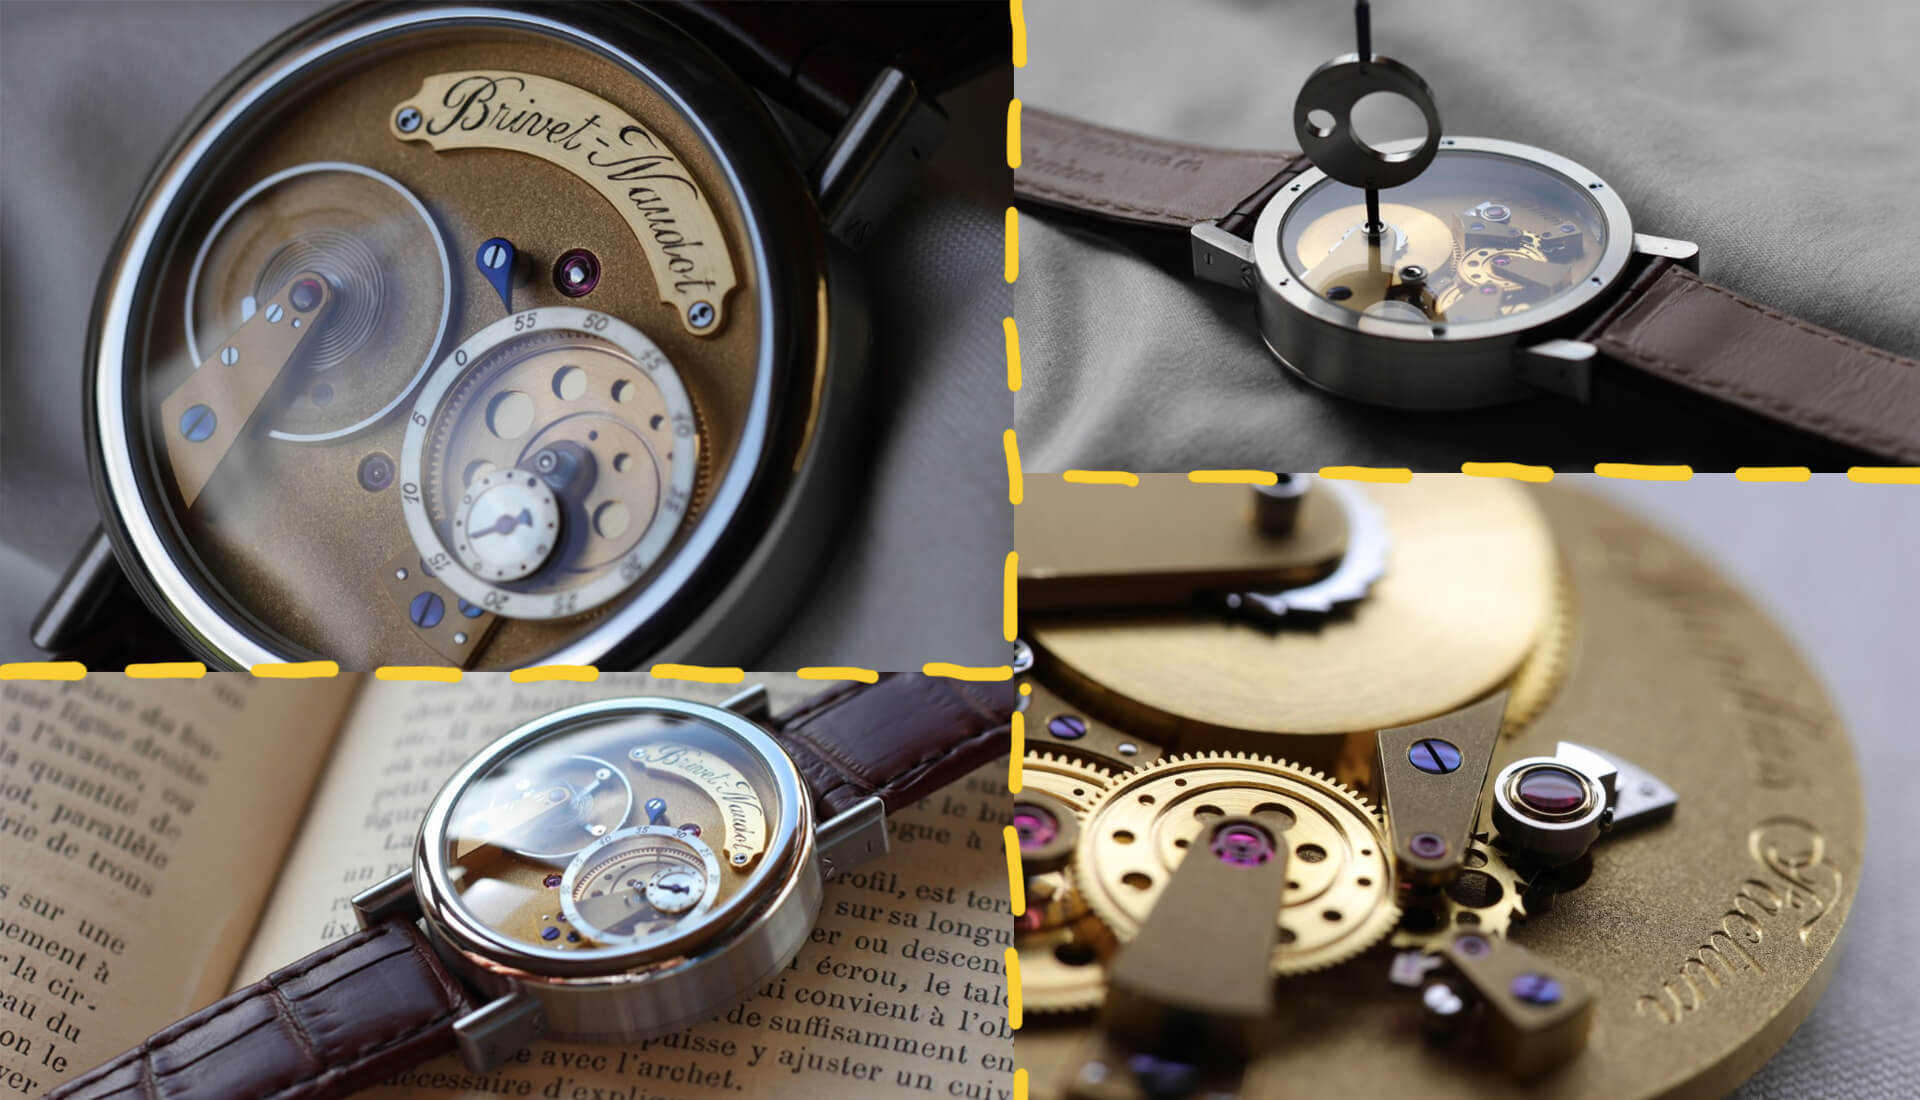 From The Press: A Young Watchmaker and His INSANE First Release